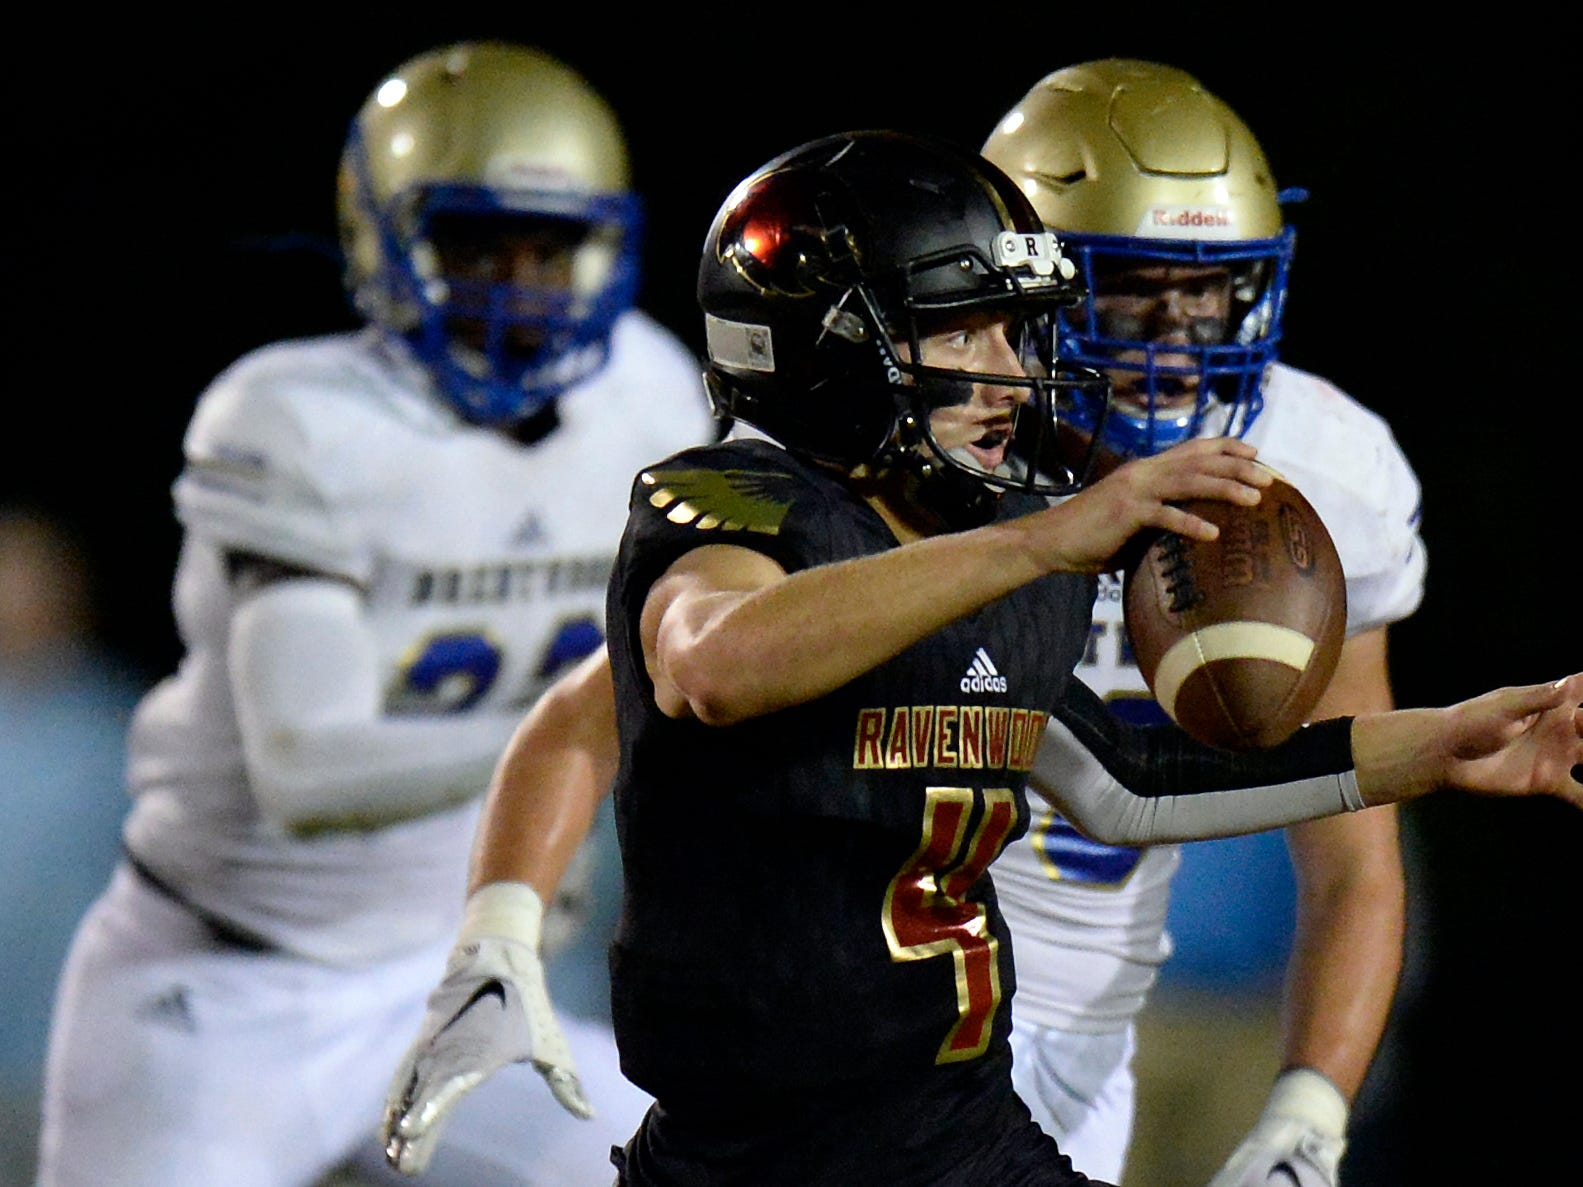 Ravenwood quarterback Brian Garcia (4) runs the ball against Brentwood during the first half of an high school football game Friday, September 14, 2018, in Brentwood, Tenn.